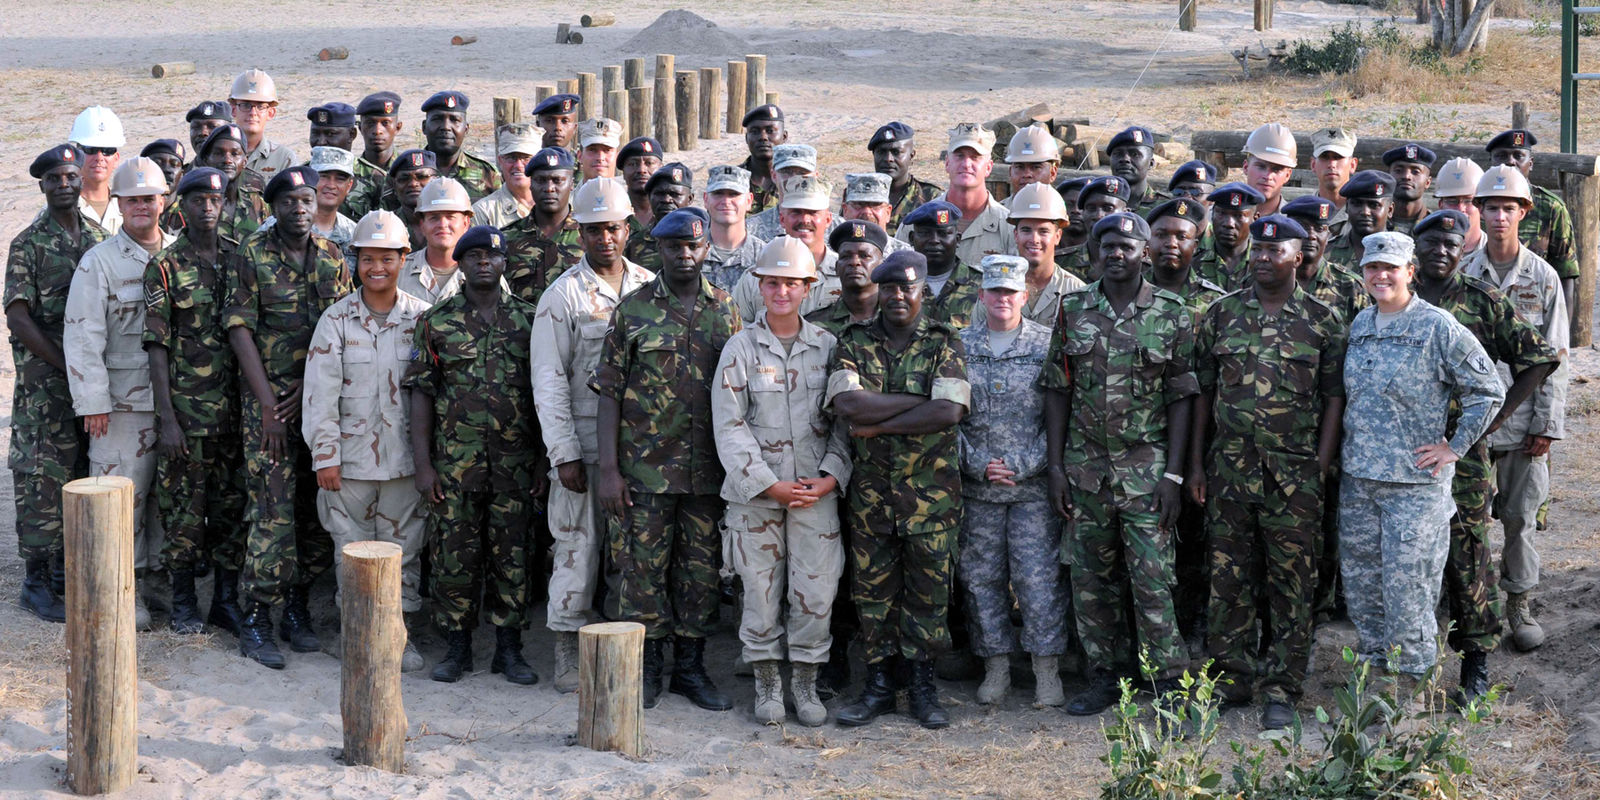 American and Kenyan engineers at Manda Bay in Kenya in 2009. Credit: U.S. Army